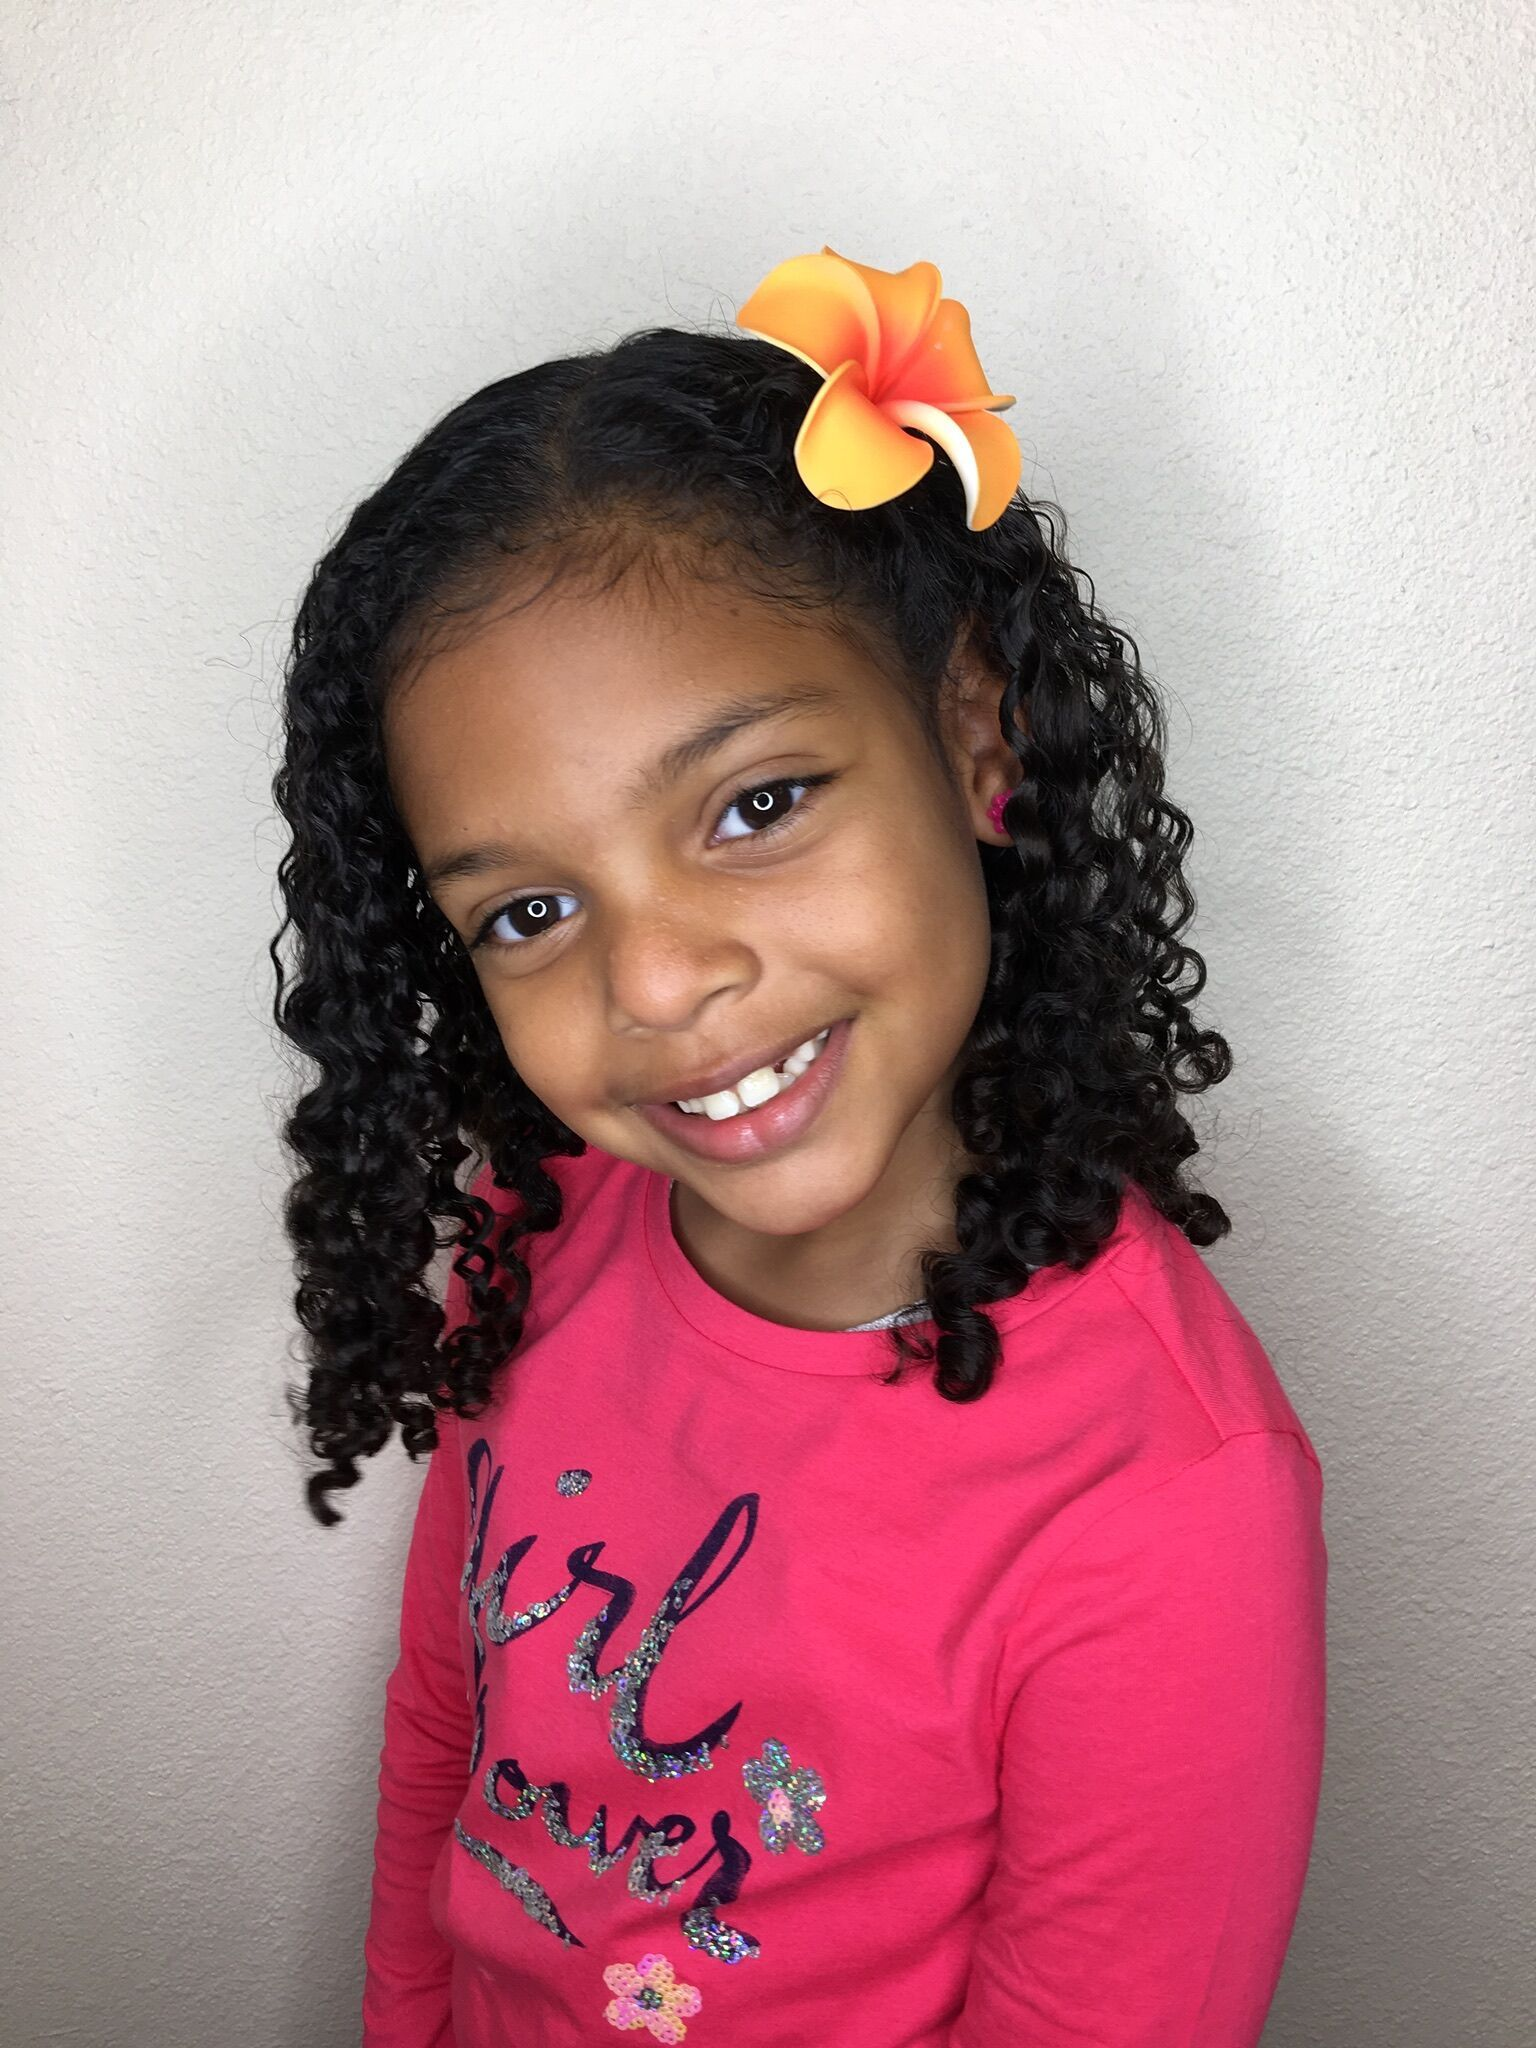 Say Hello To One Of The Kids Of Be Kekoa At The Be Kekoa Hair